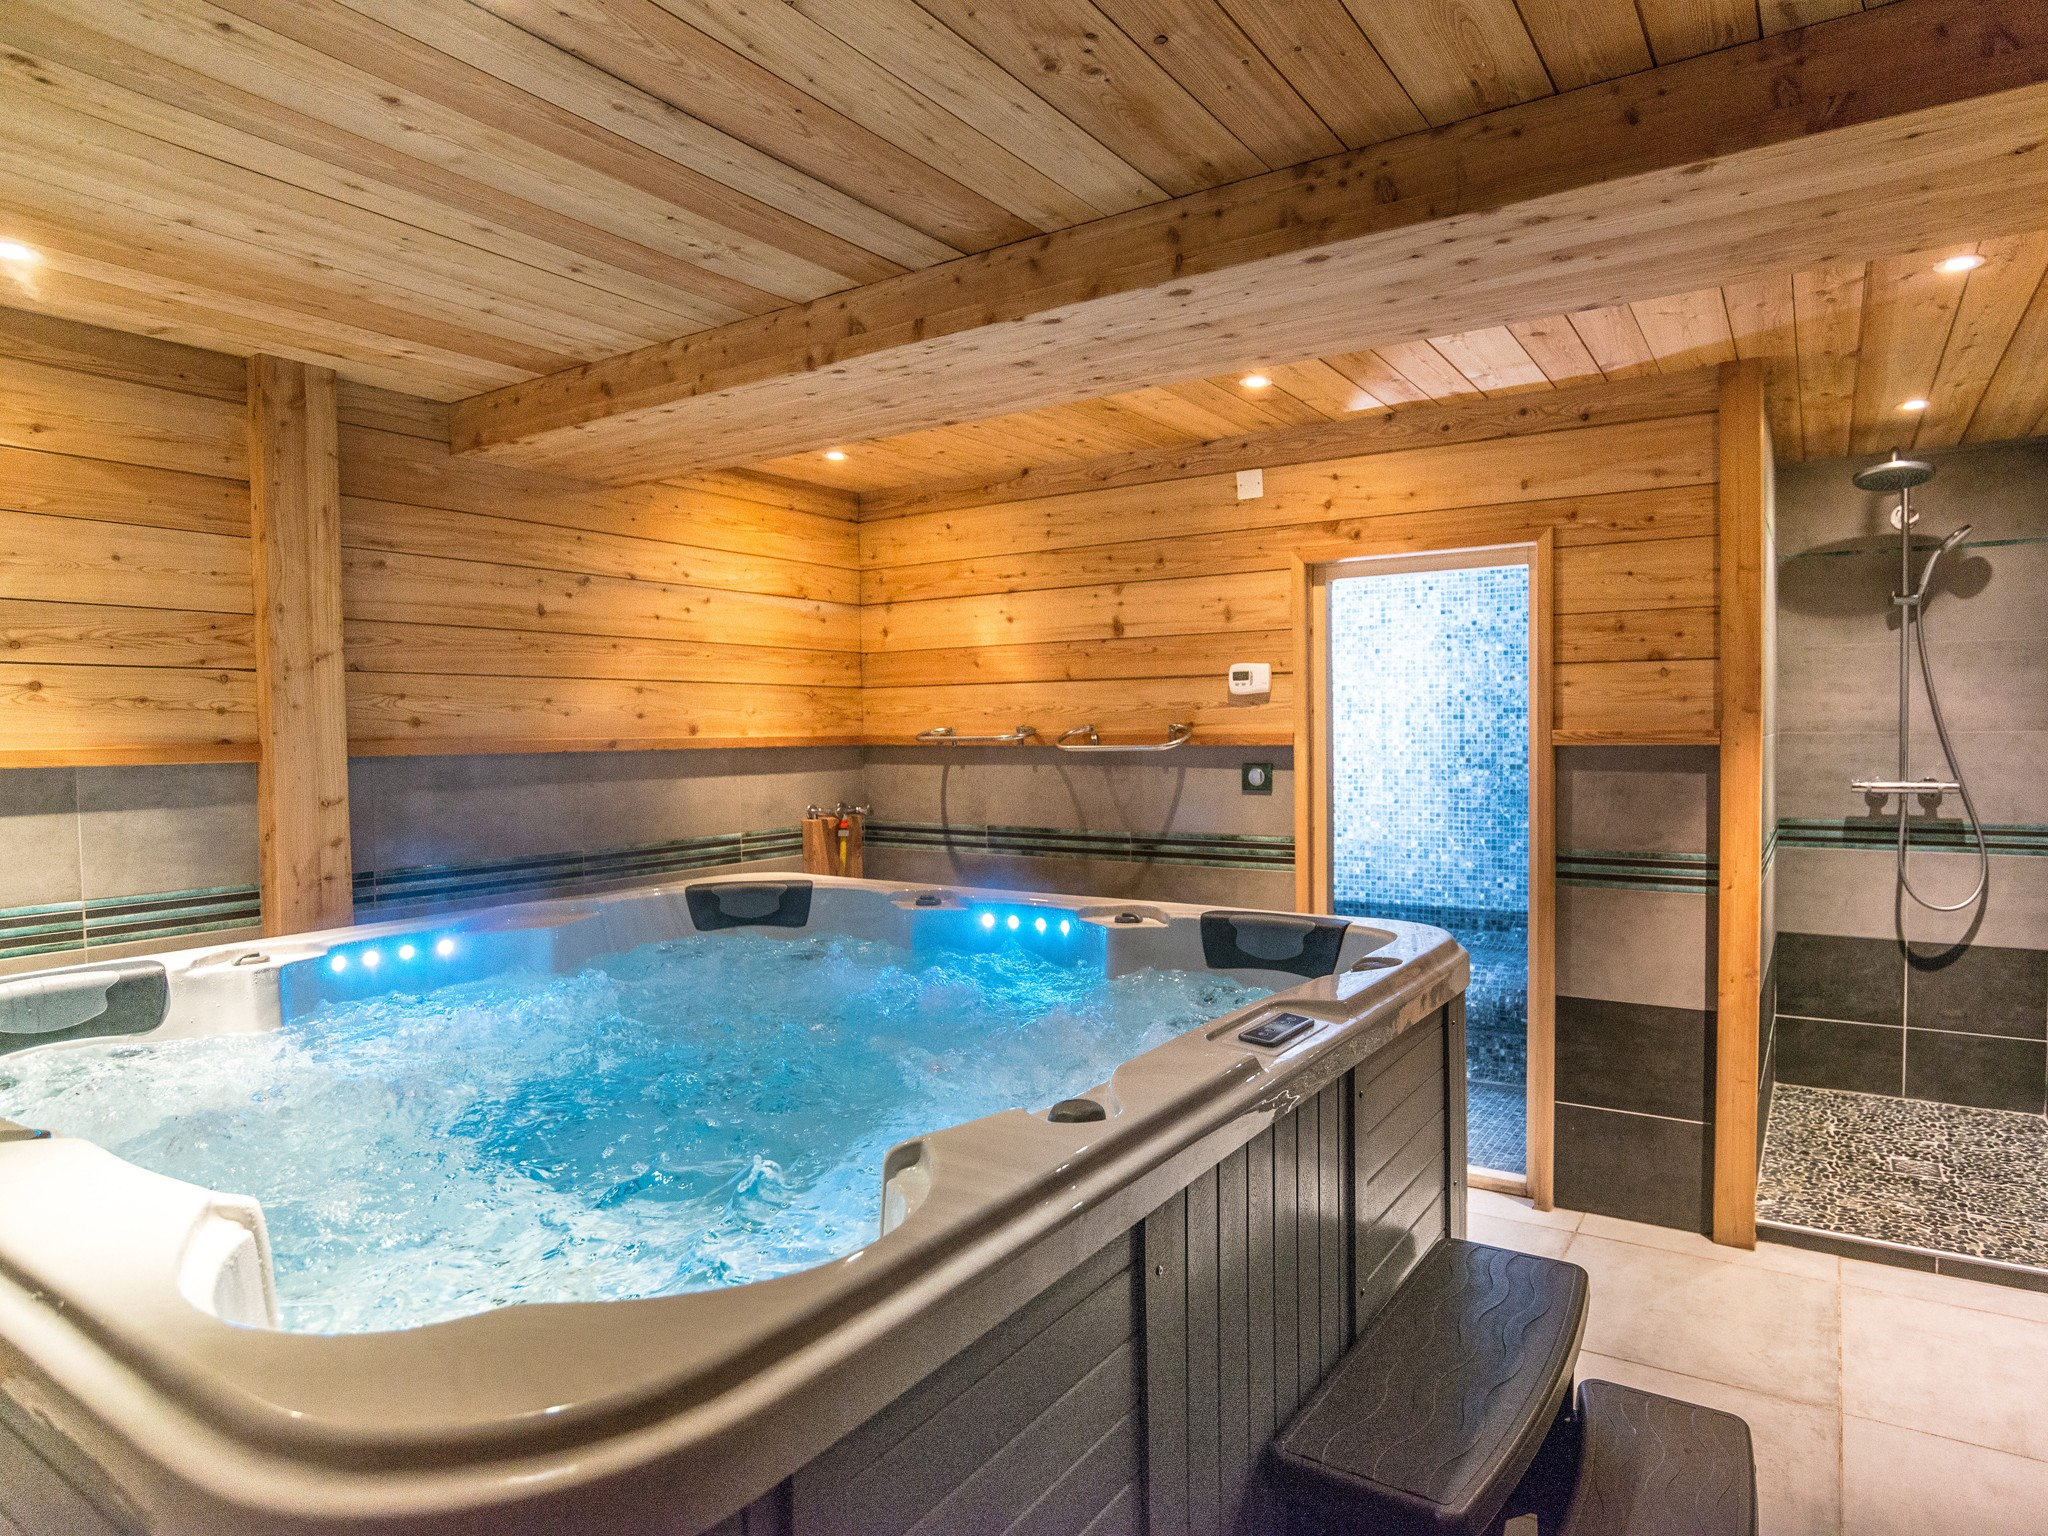 Chalet Ysengrin - outdoor jacuzzi